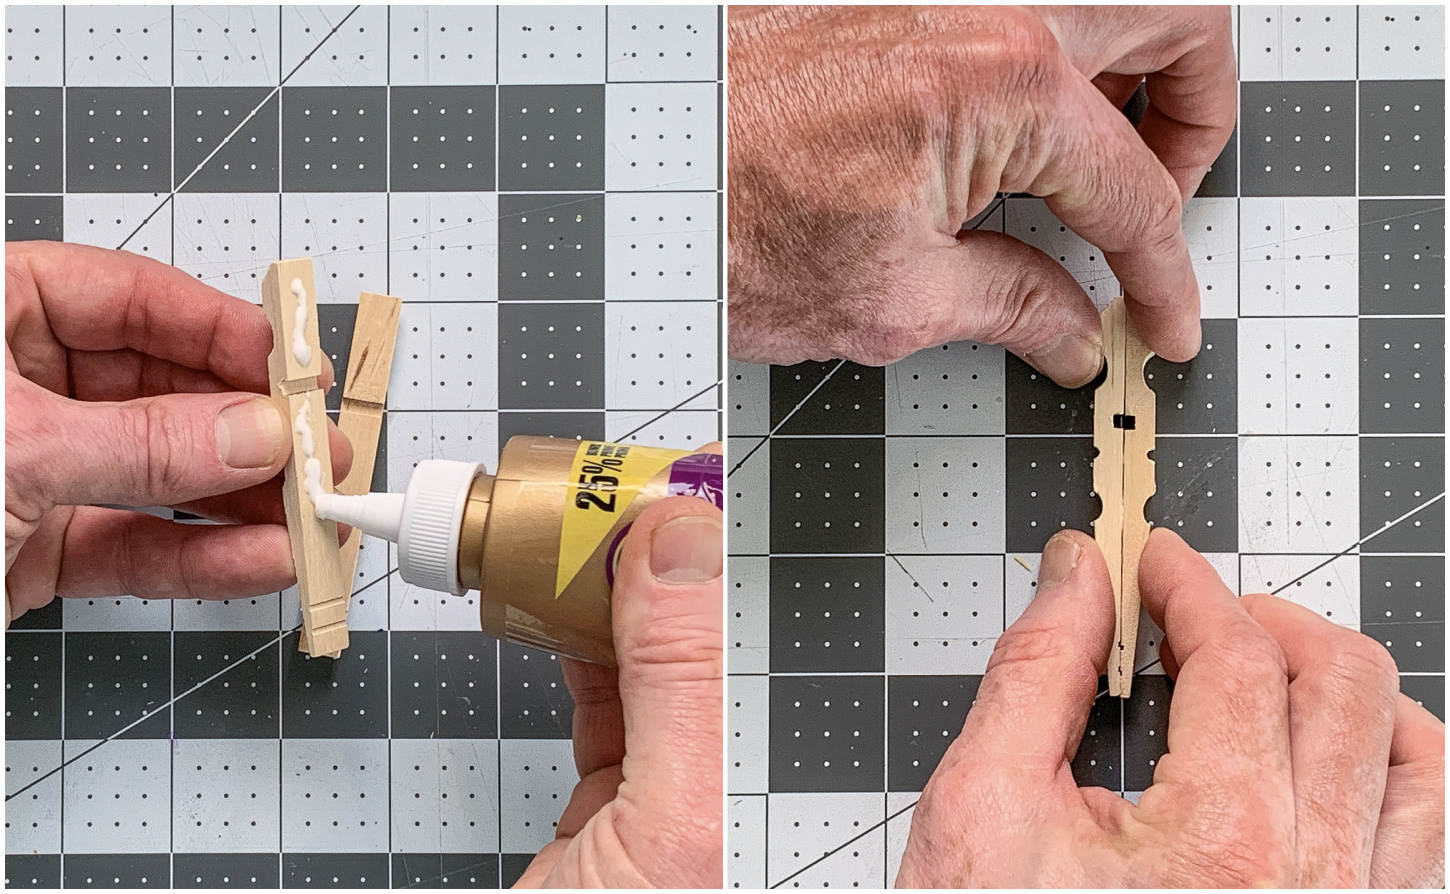 Gluing two clothespin halves together to form a butterfly body